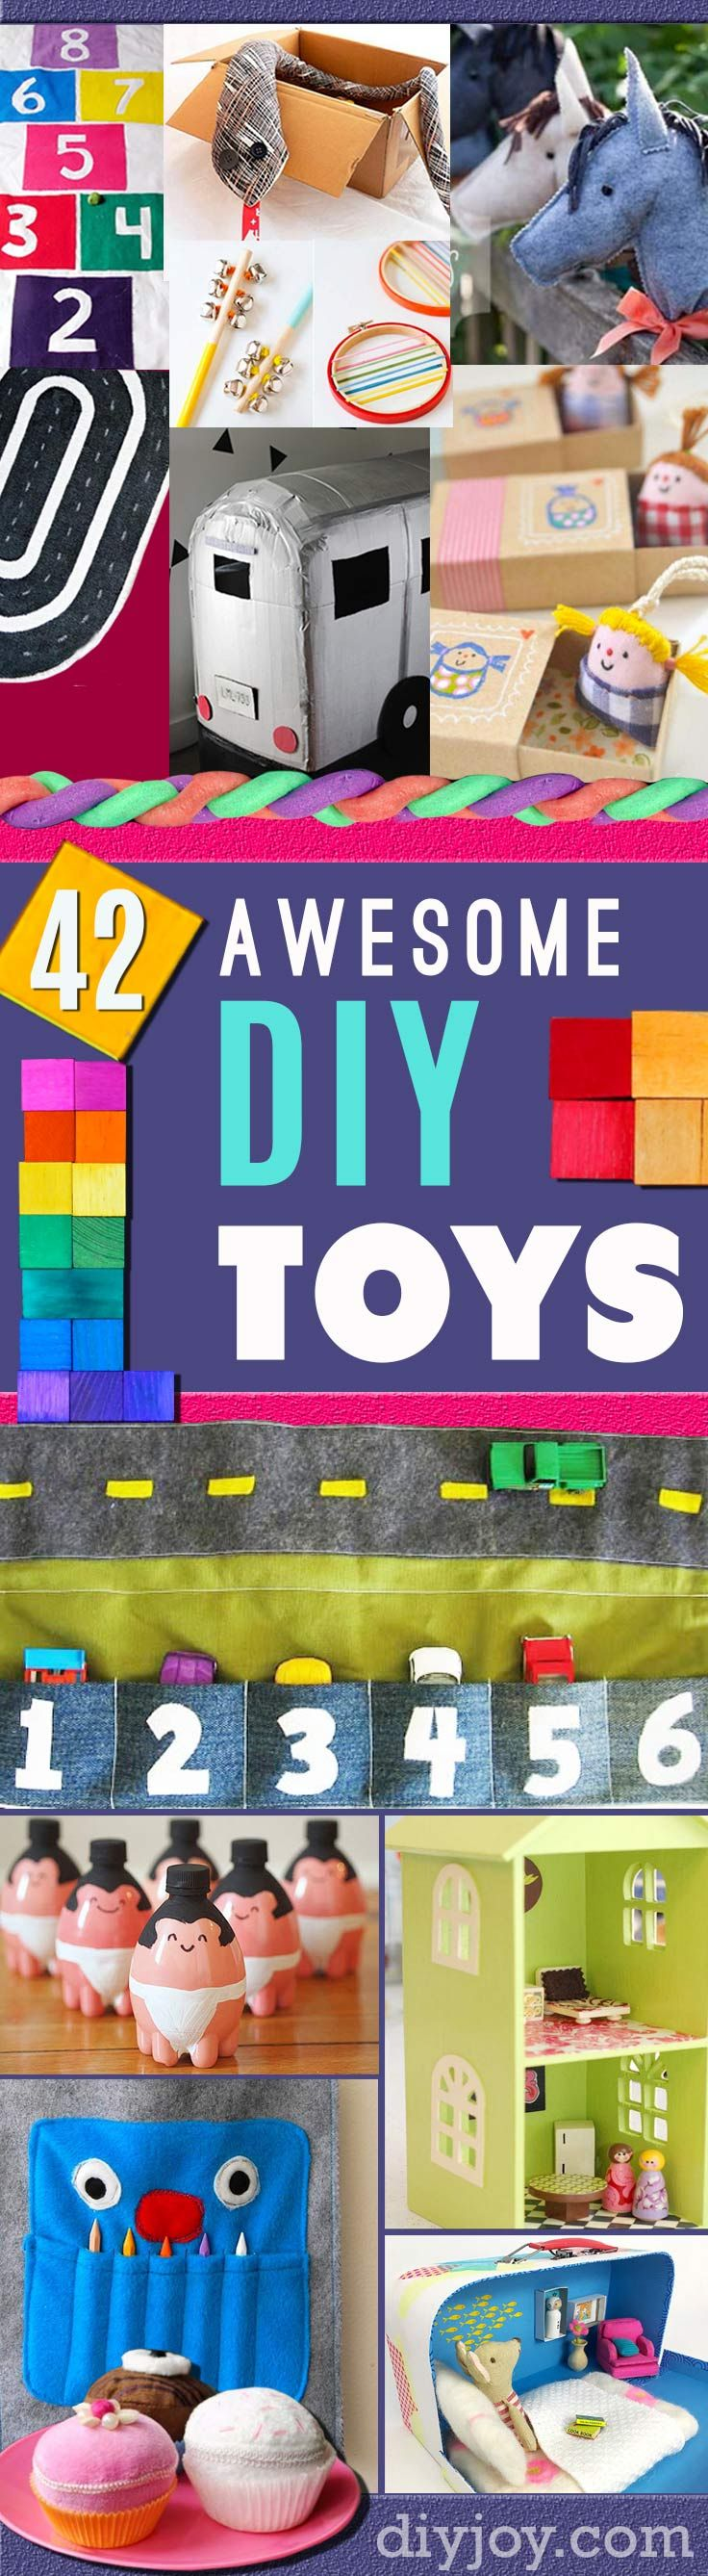 Do It Yourself Christmas Gifts for Kids - Homemade Christmas Presents for Children and DYI Christmas Crafts for Kids | Toys, Dress Up Clothes, Dolls and Fun Games | Cool gifts to make for boys and girls.